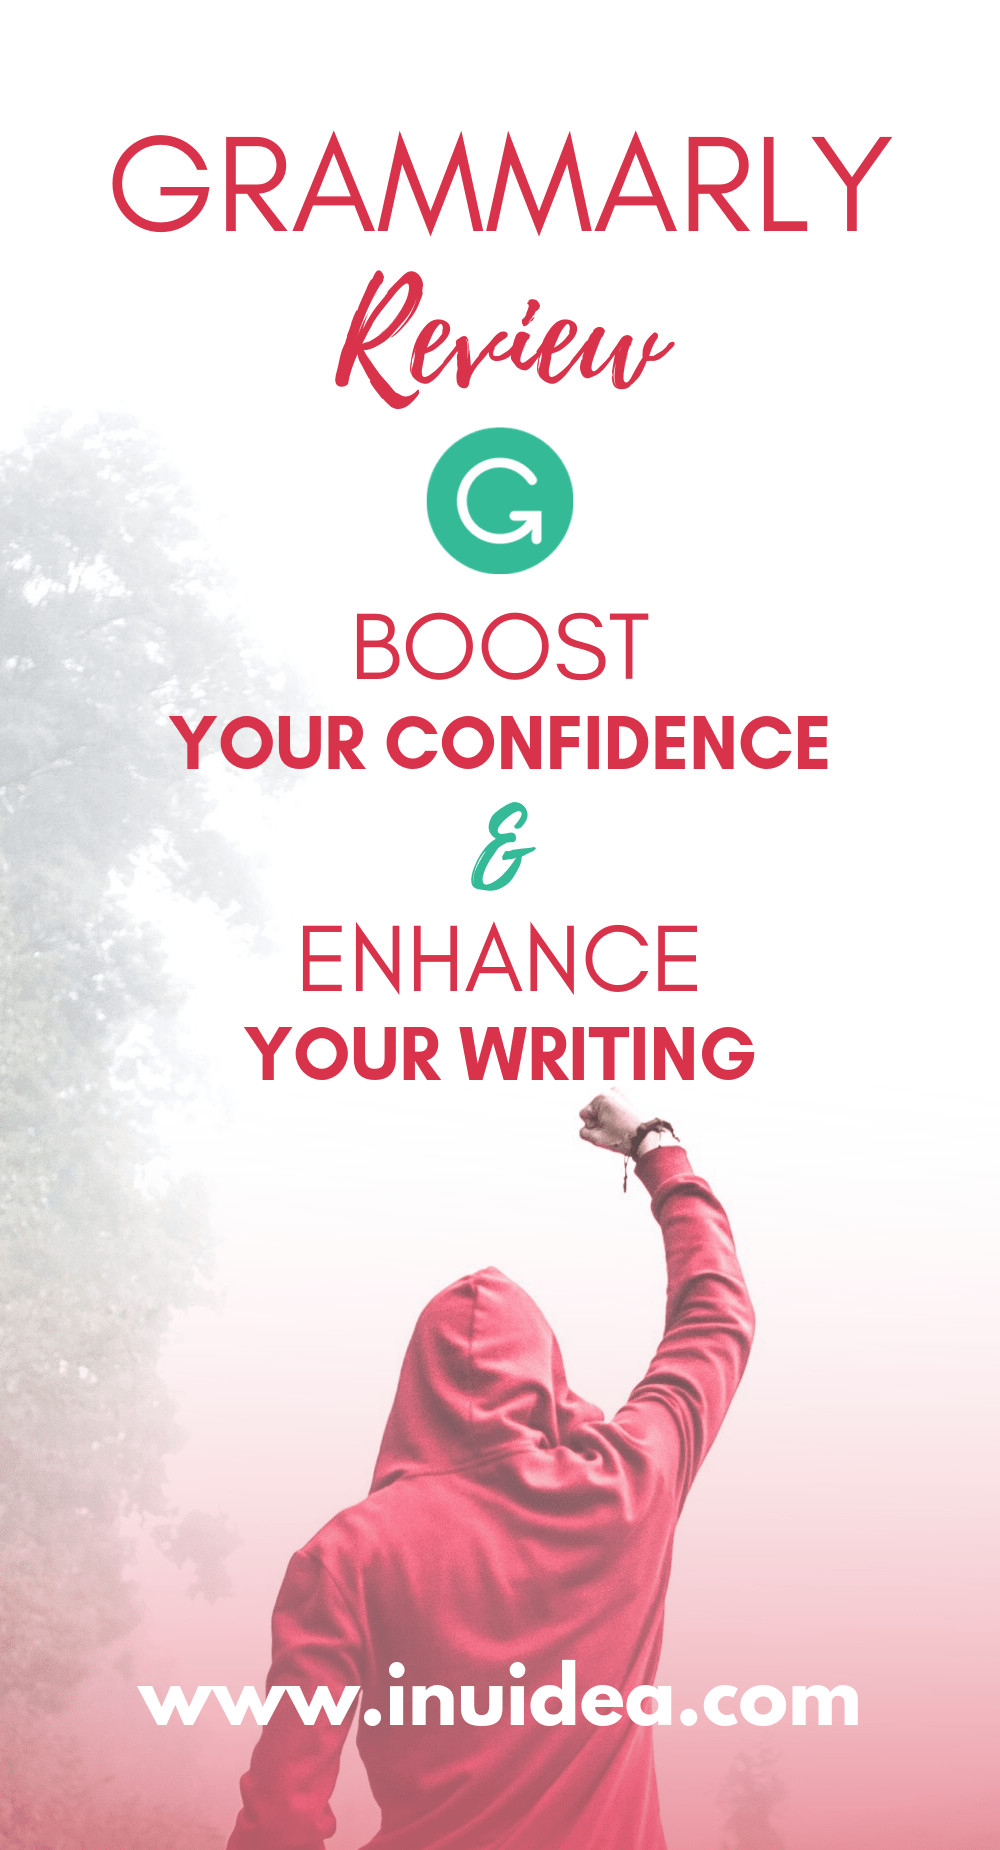 Grammarly Proofreading Software Deals Cheap